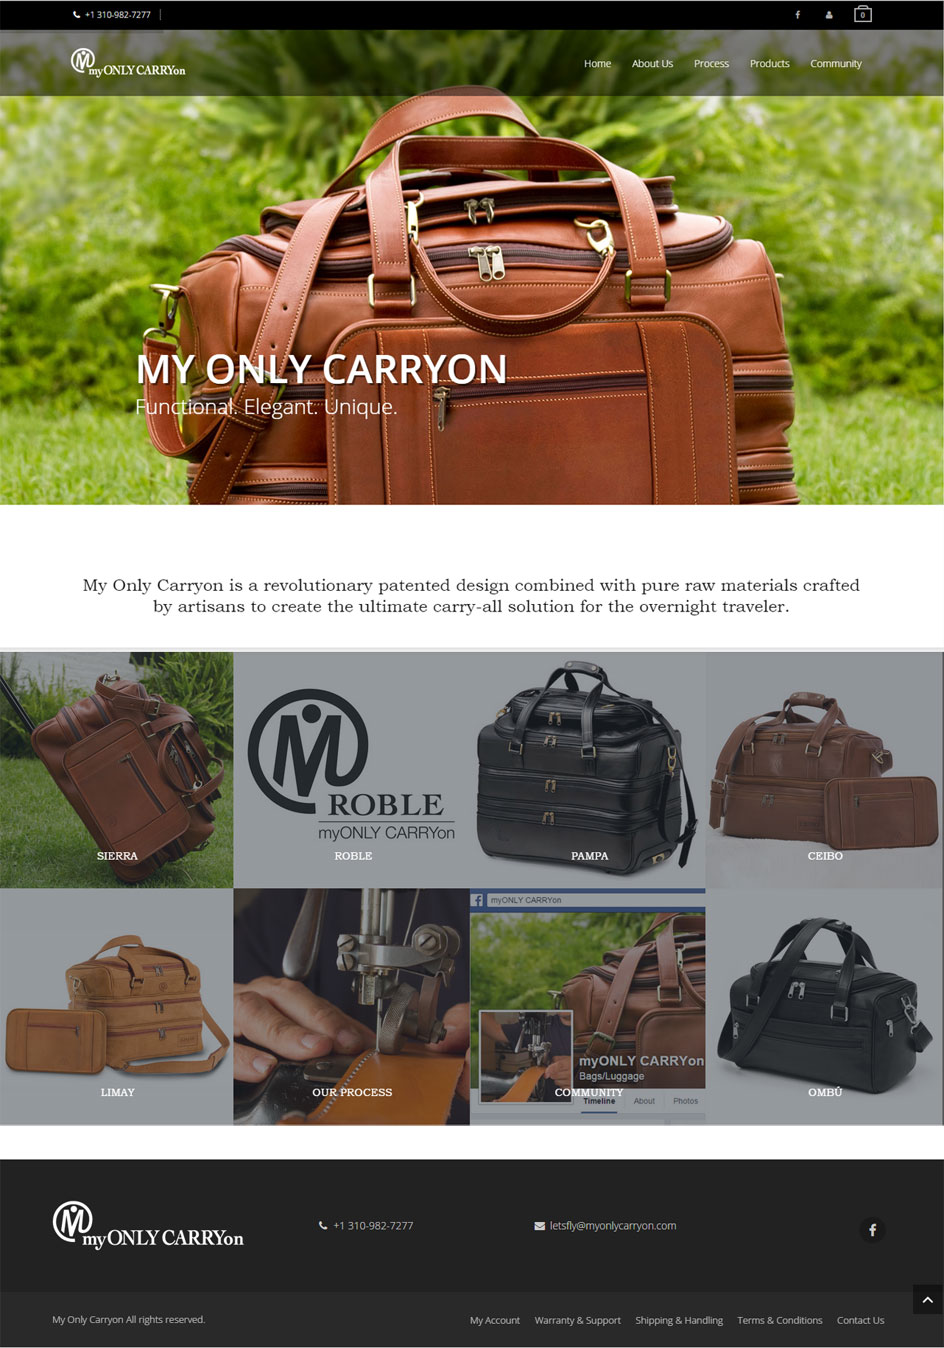 My Only Carryon website design